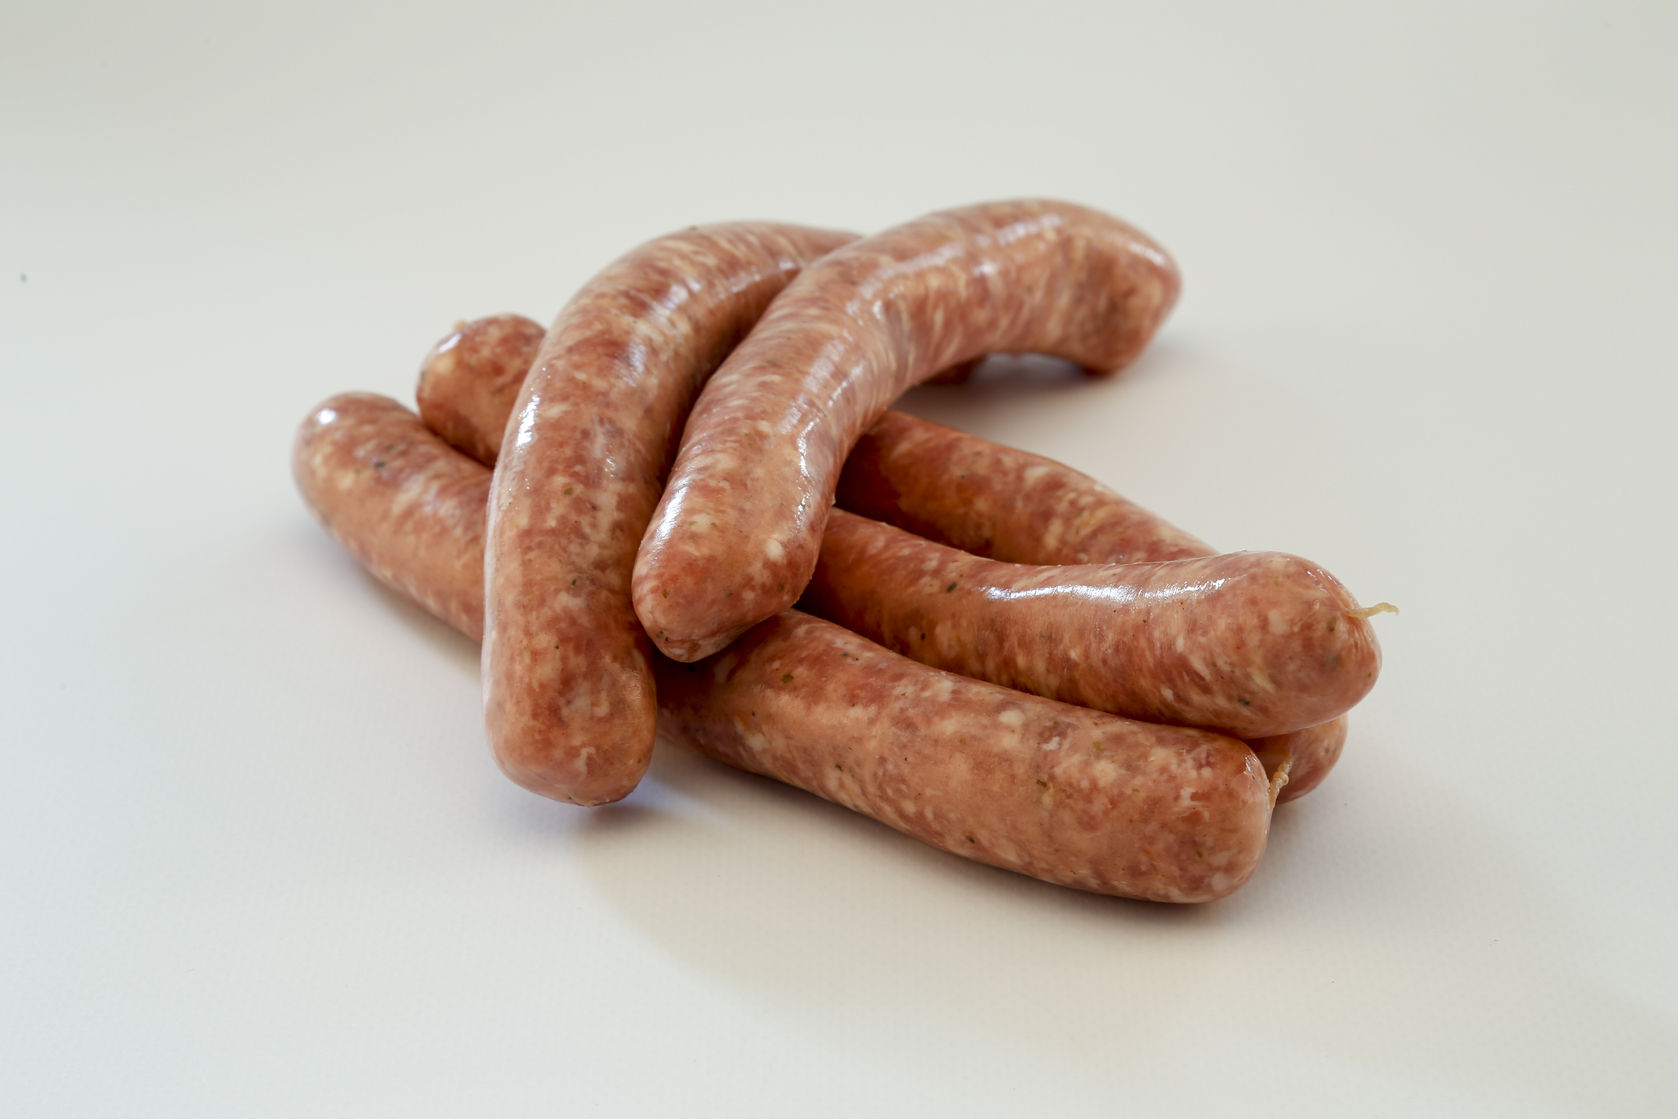 Spicy sausages on each other